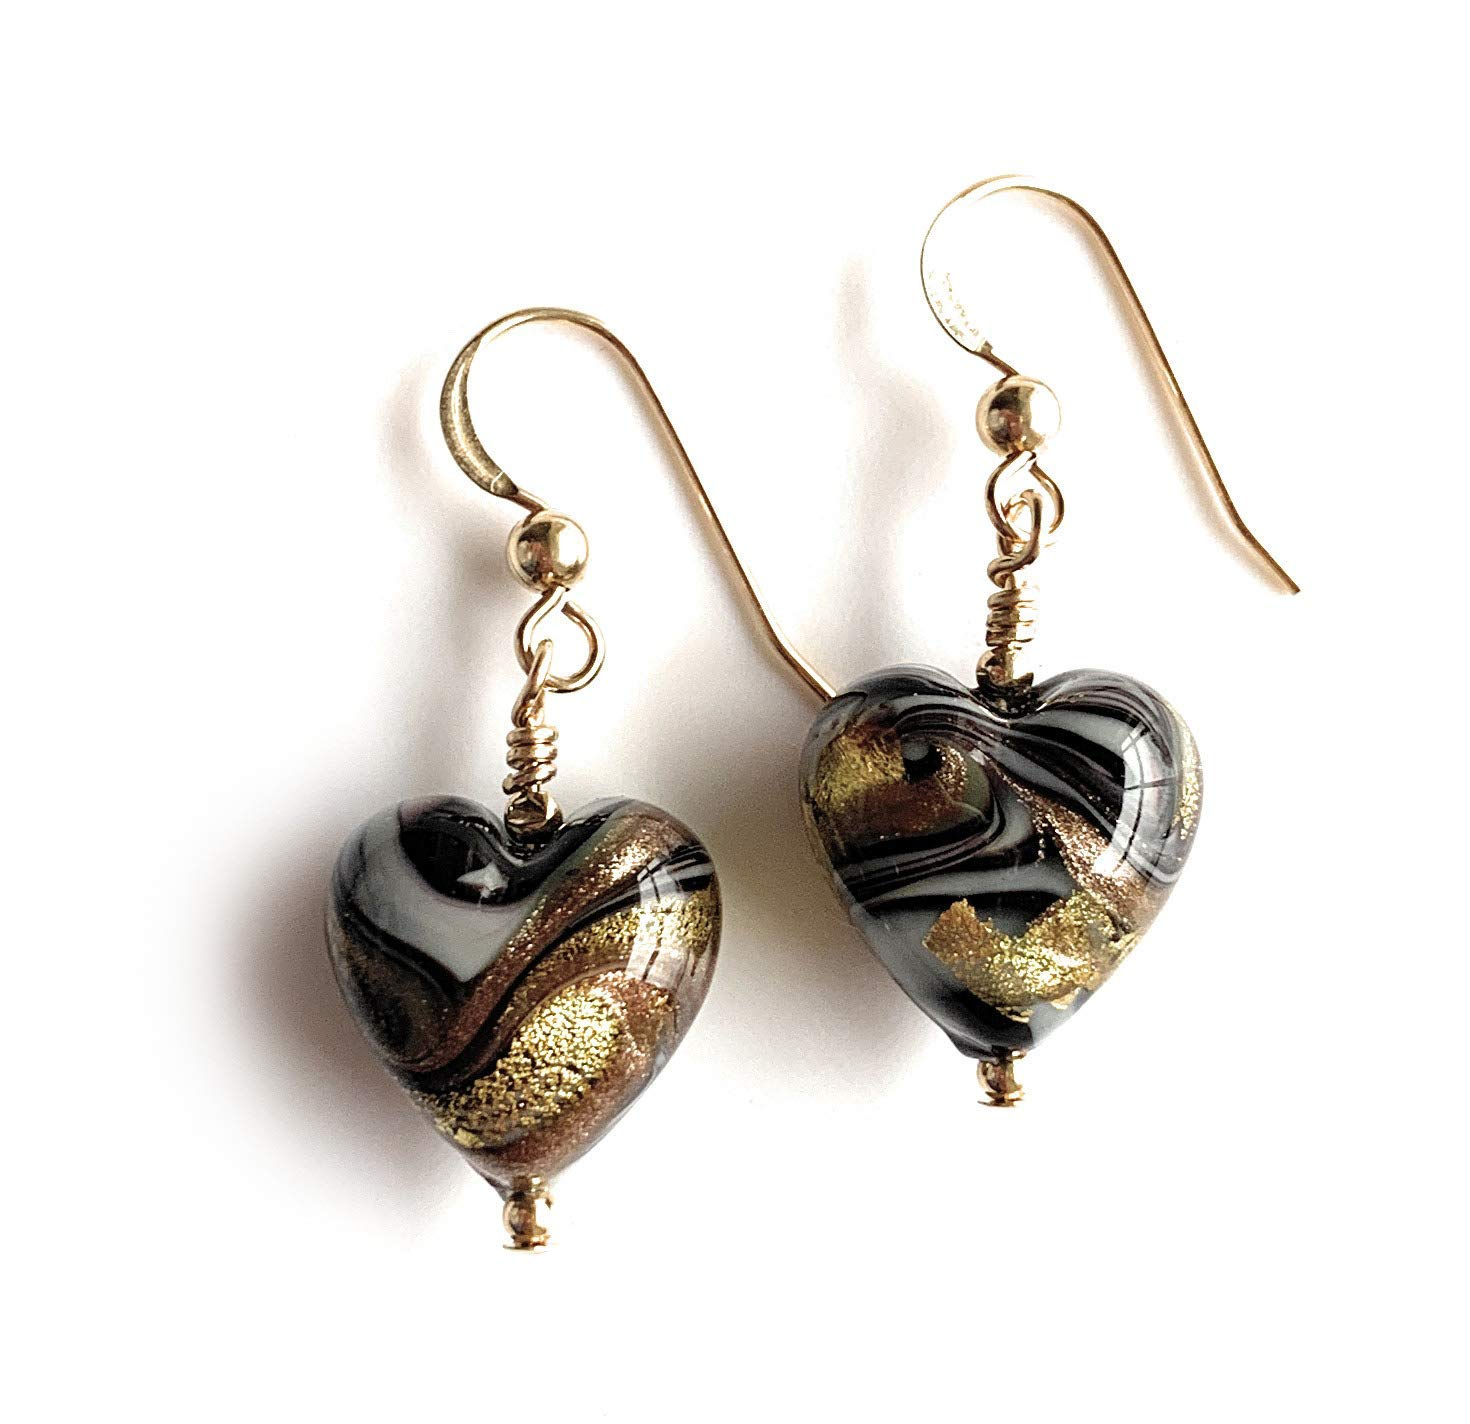 Diana Ingram earrings with byzantine grey and gold Murano glass small heart drops on Sterling Silver or 22 Carat gold vermeil hooks